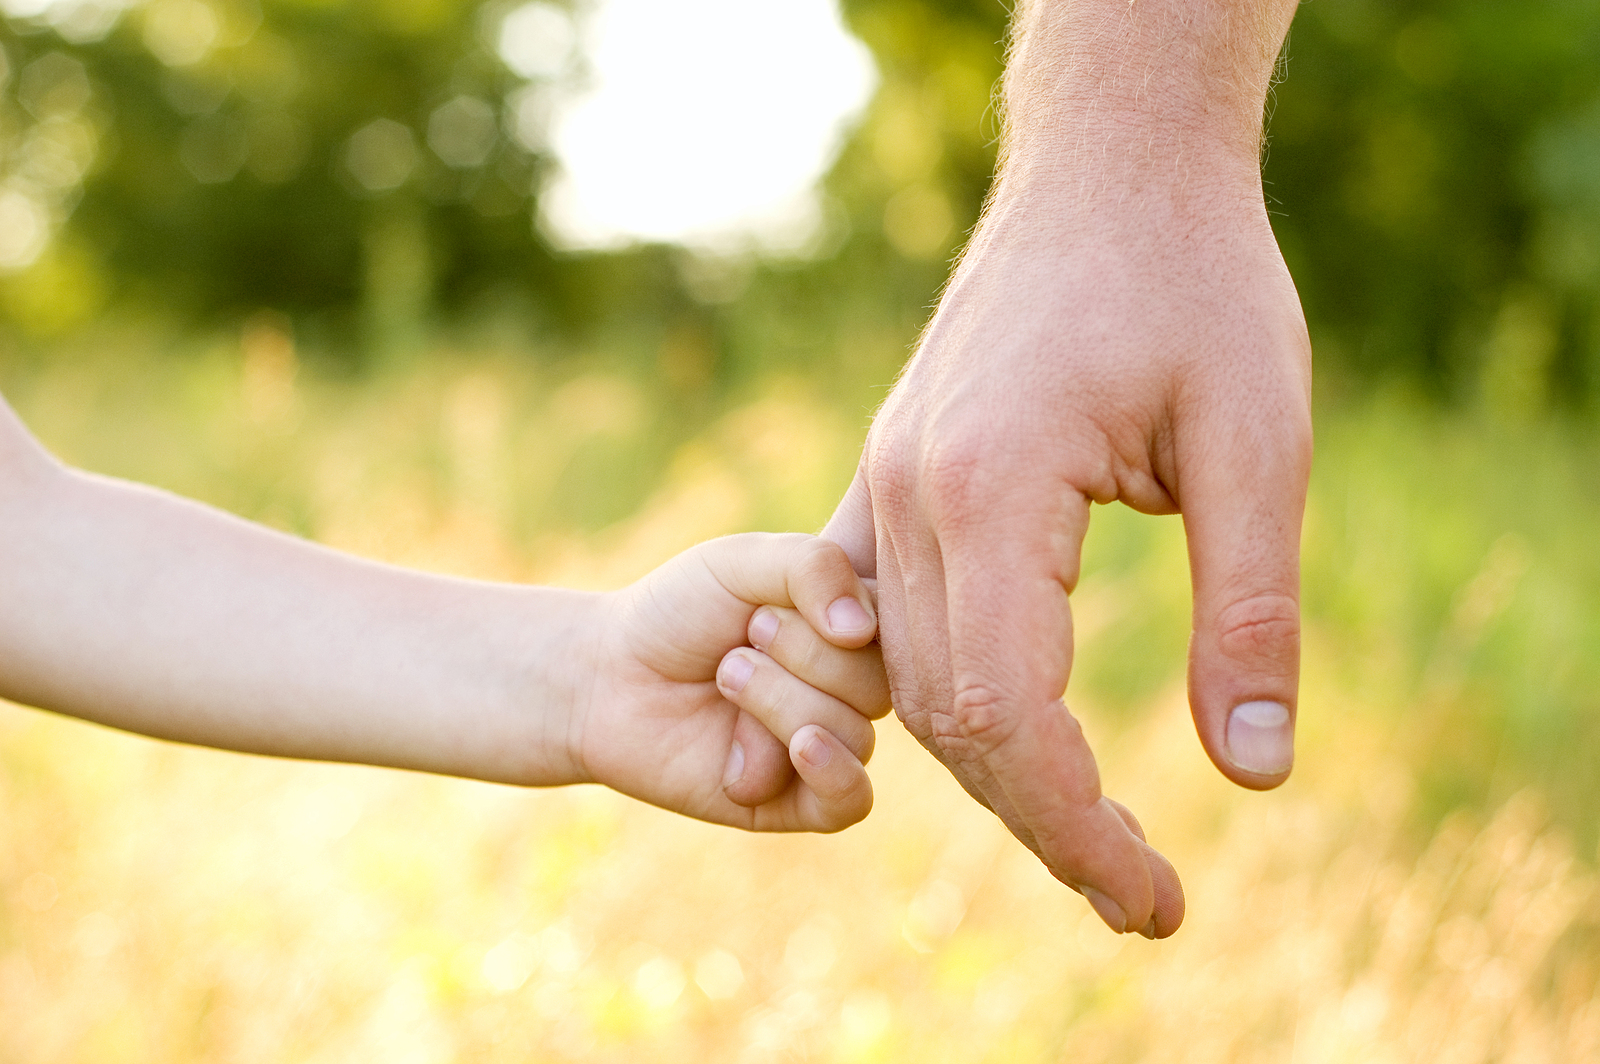 bigstock-trust-family-hands-of-child-so-27258686